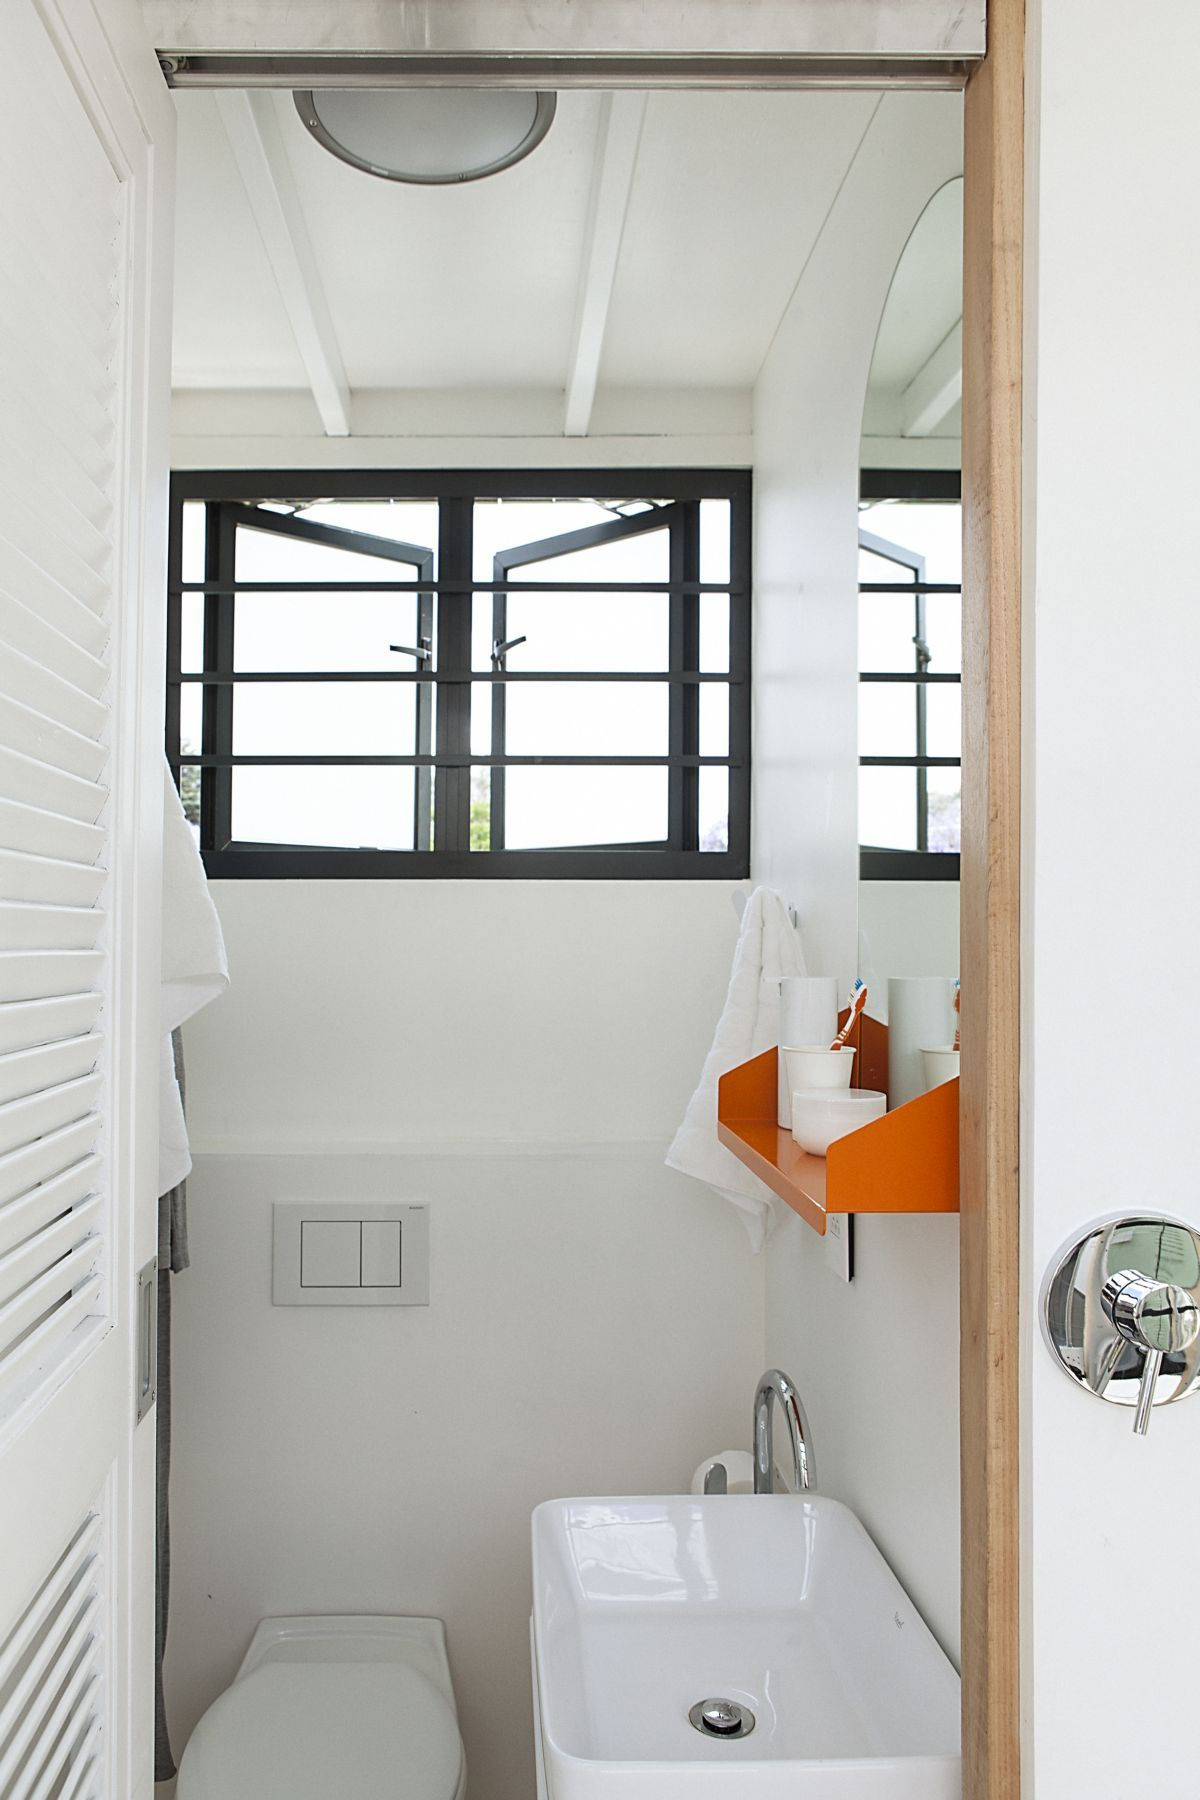 Pod iDLADLA bathroom interior photographed by Brett Rubin